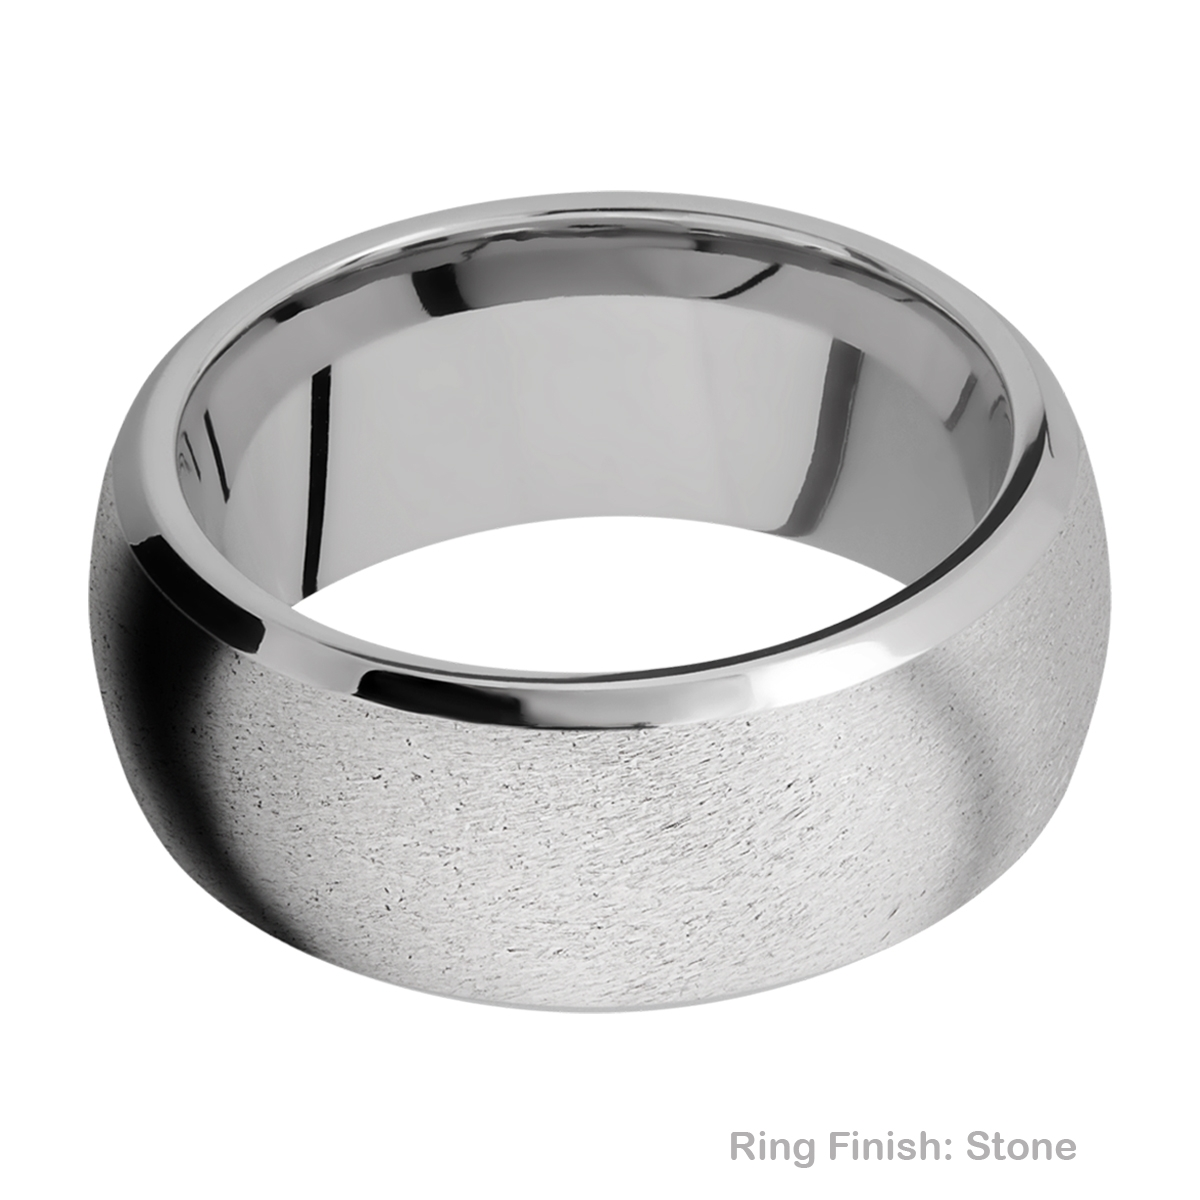 Lashbrook 10DB Titanium Wedding Ring or Band Alternative View 6